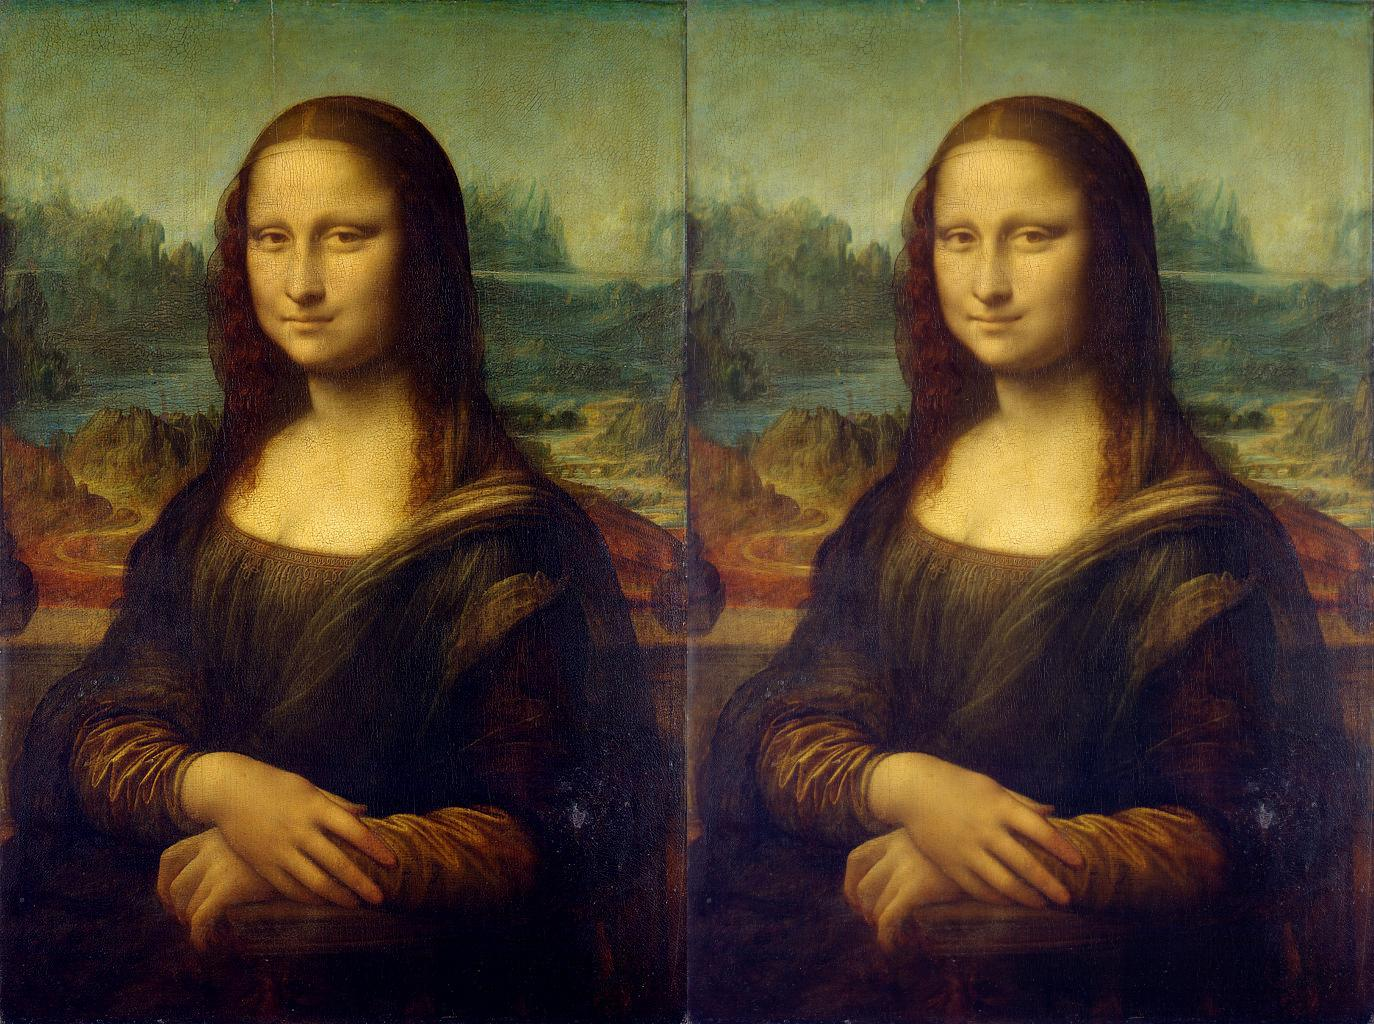 sociological theory mona lisa smile There is a more objective way to analyze the mona lisa smile, using the social psychology (or micro-sociology) a micro-sociological theory).